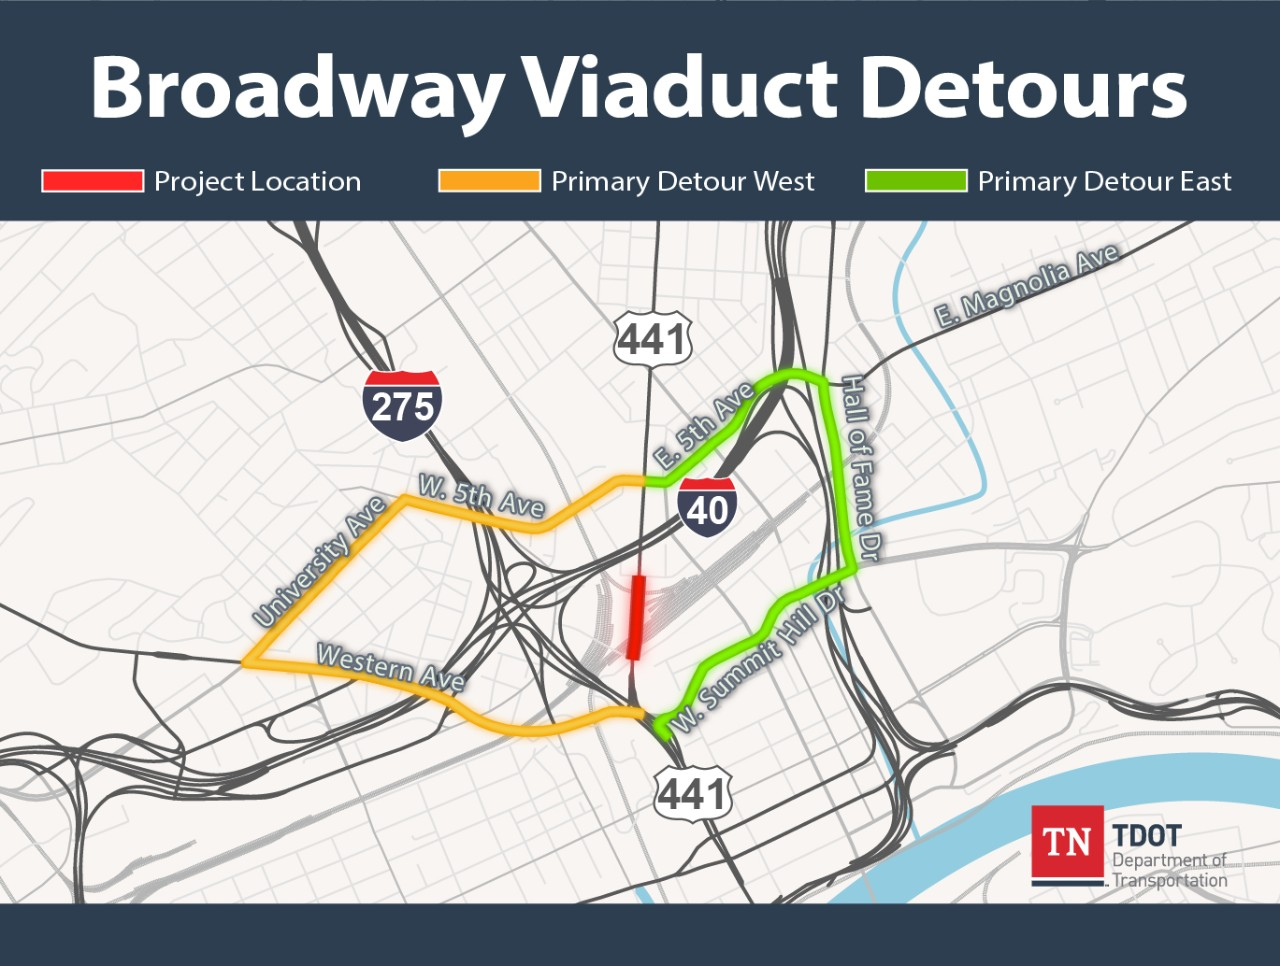 Broadway Viaduct Primary Detours